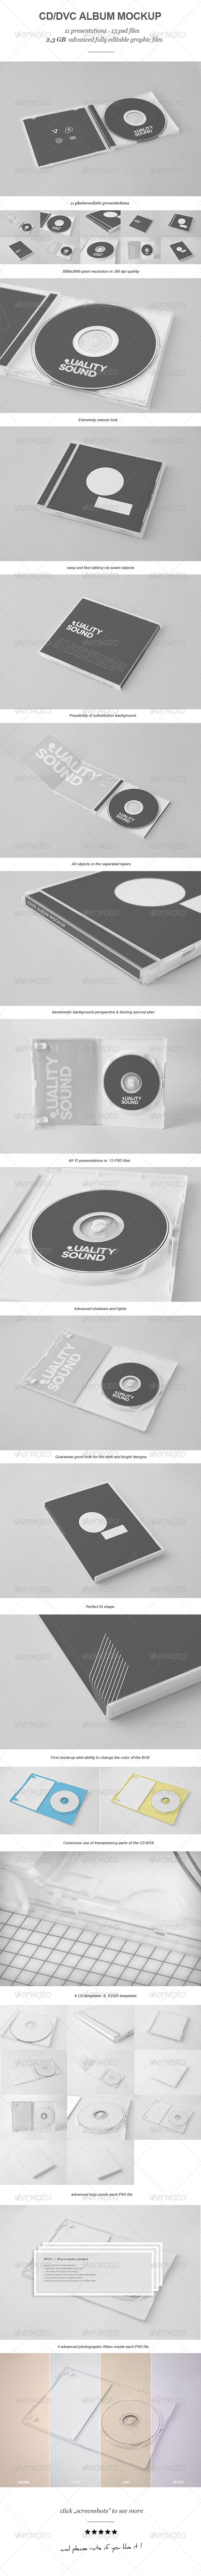 CD/DVD Album Mock-up - GraphicRiver